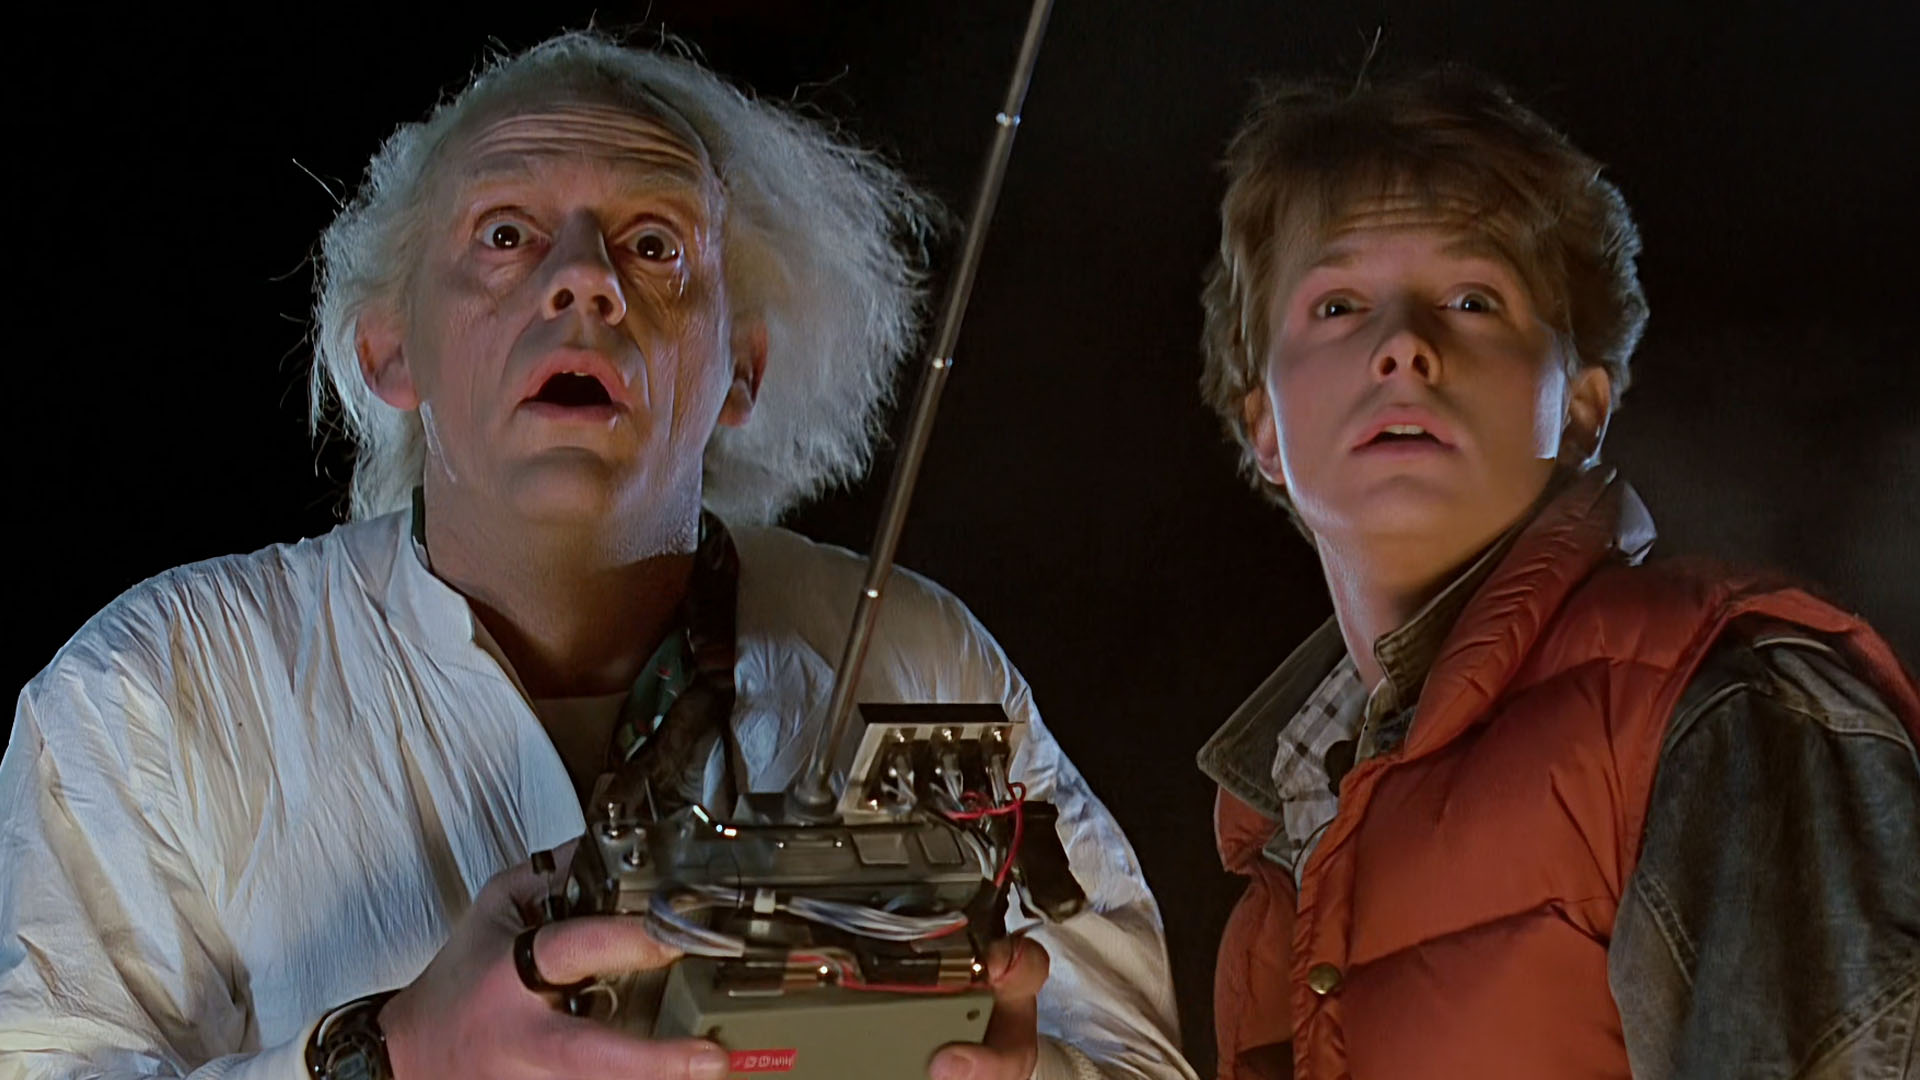 Movie Time! The Power of Love: Back to the Future Trilogy (1985 – 1990)